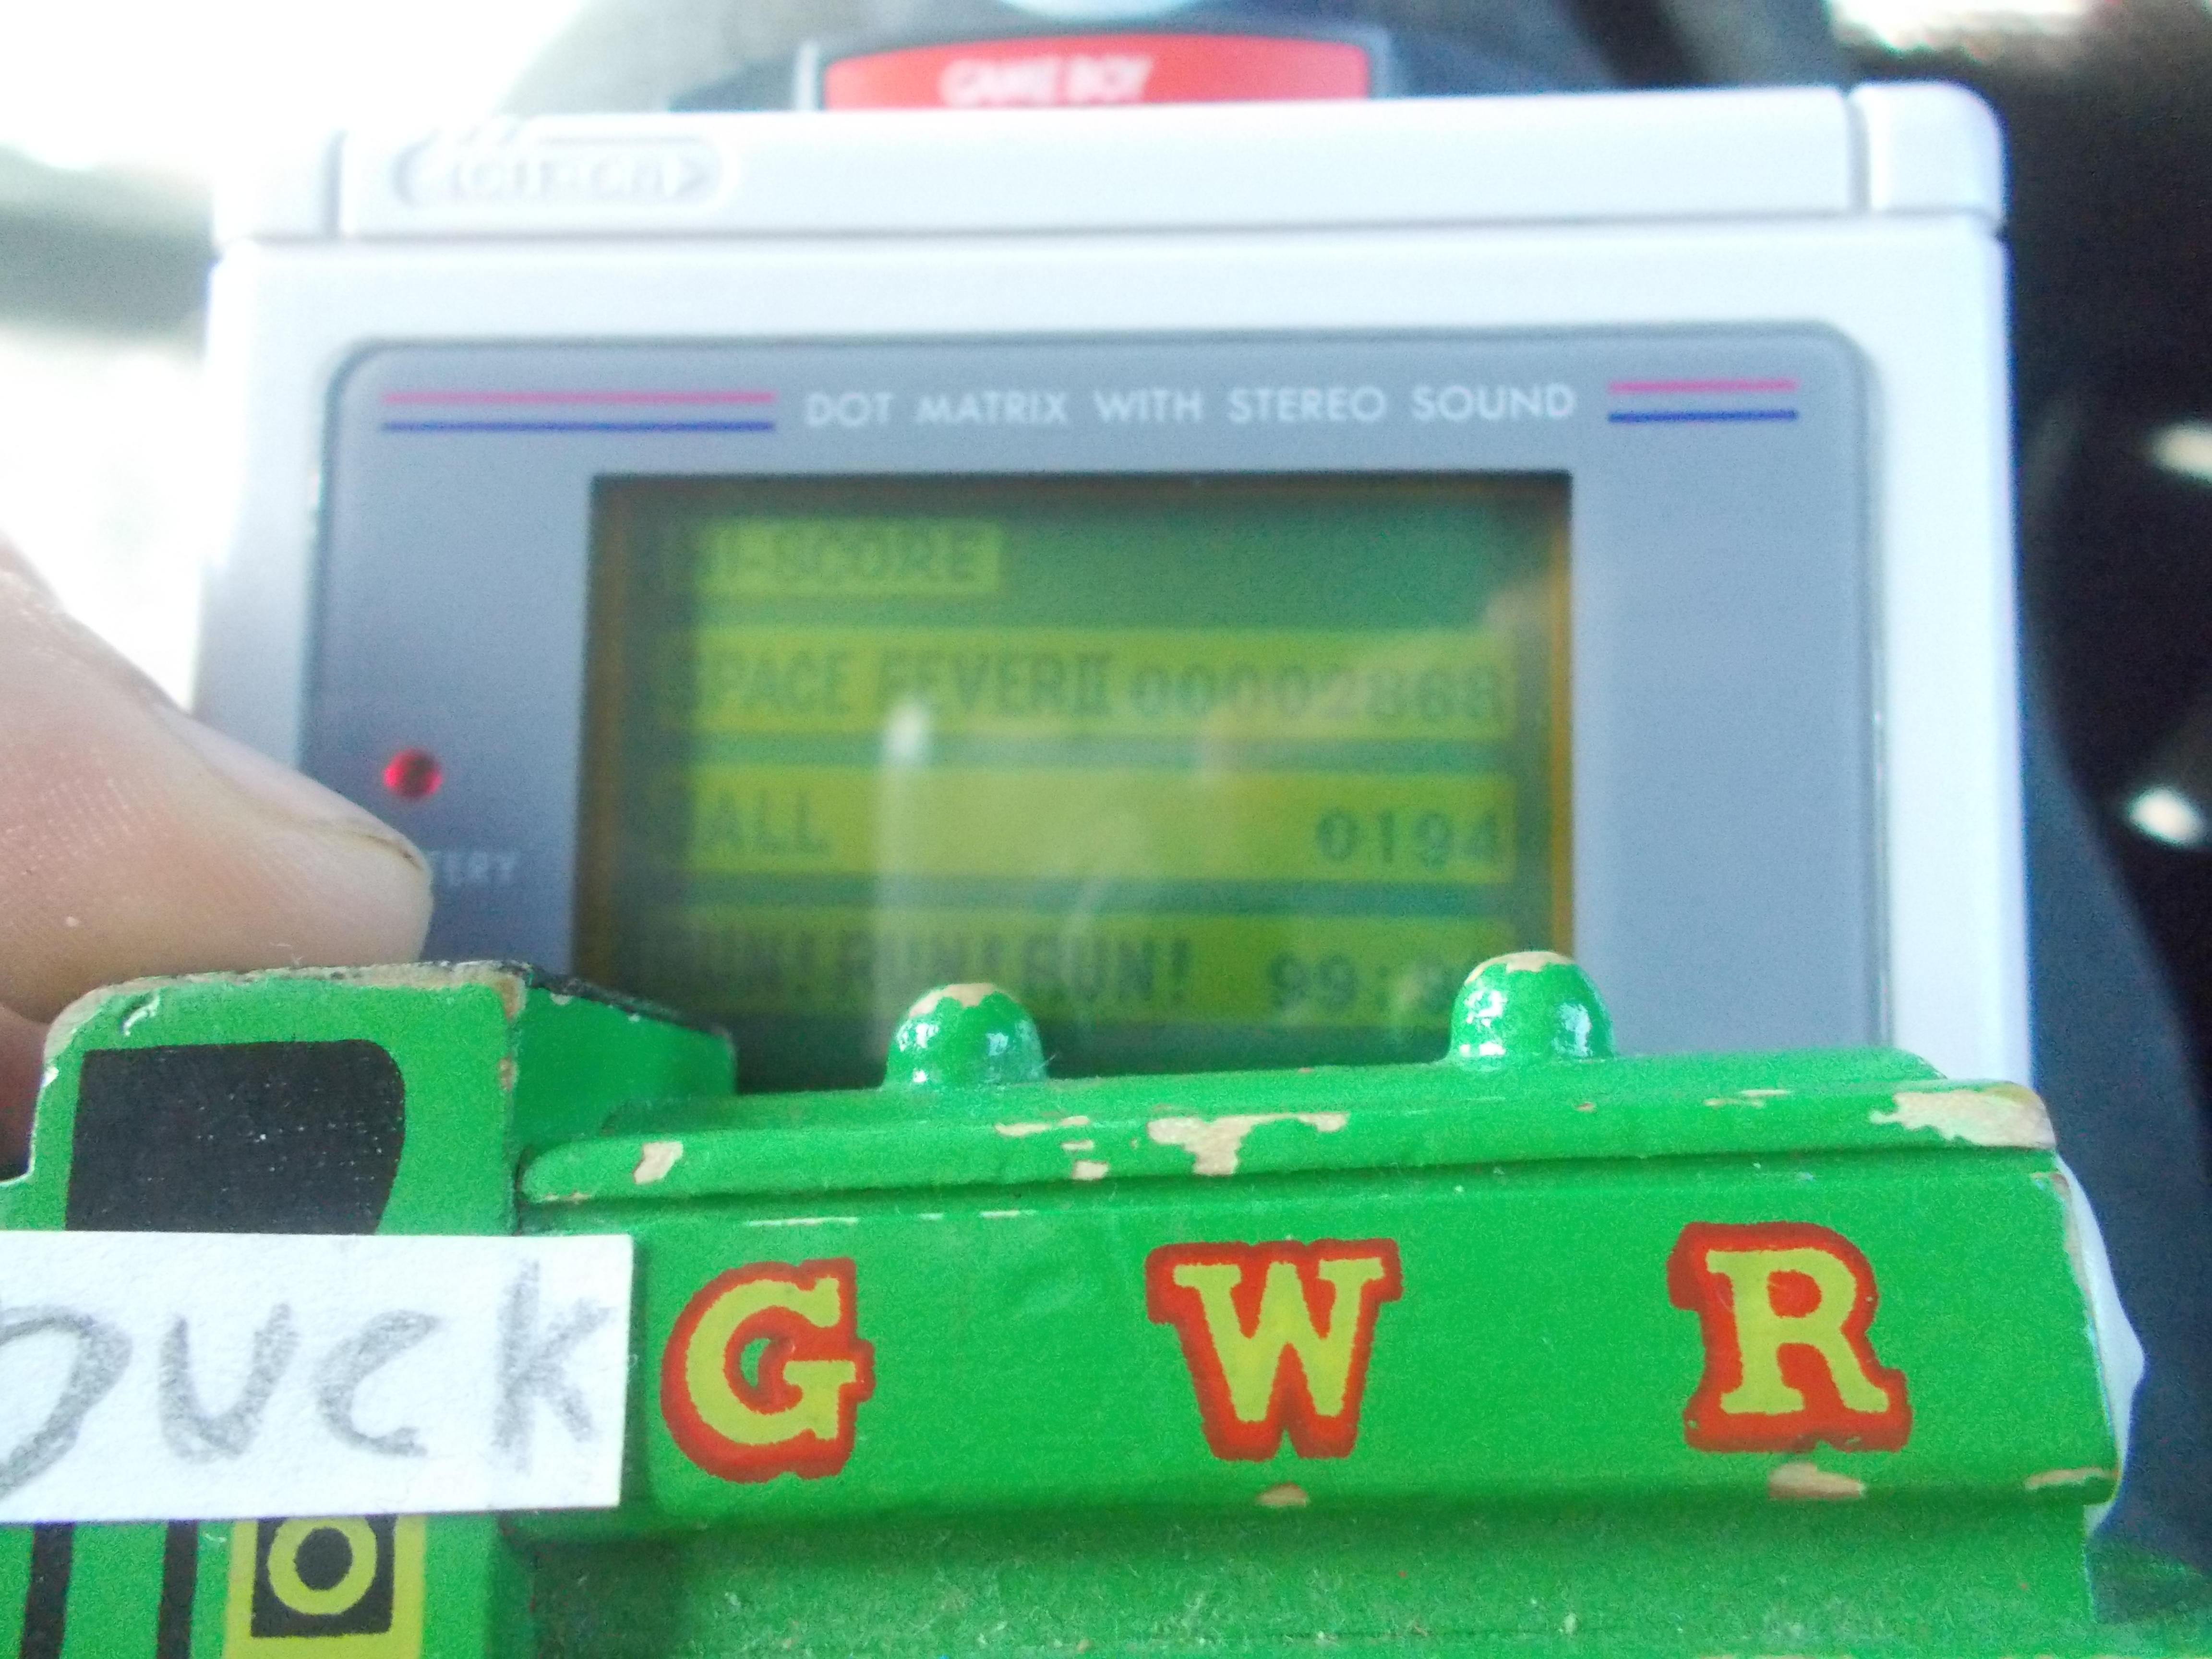 DuckGWR: Game Boy Camera: Ball (Game Boy) 194 points on 2014-10-24 19:32:03